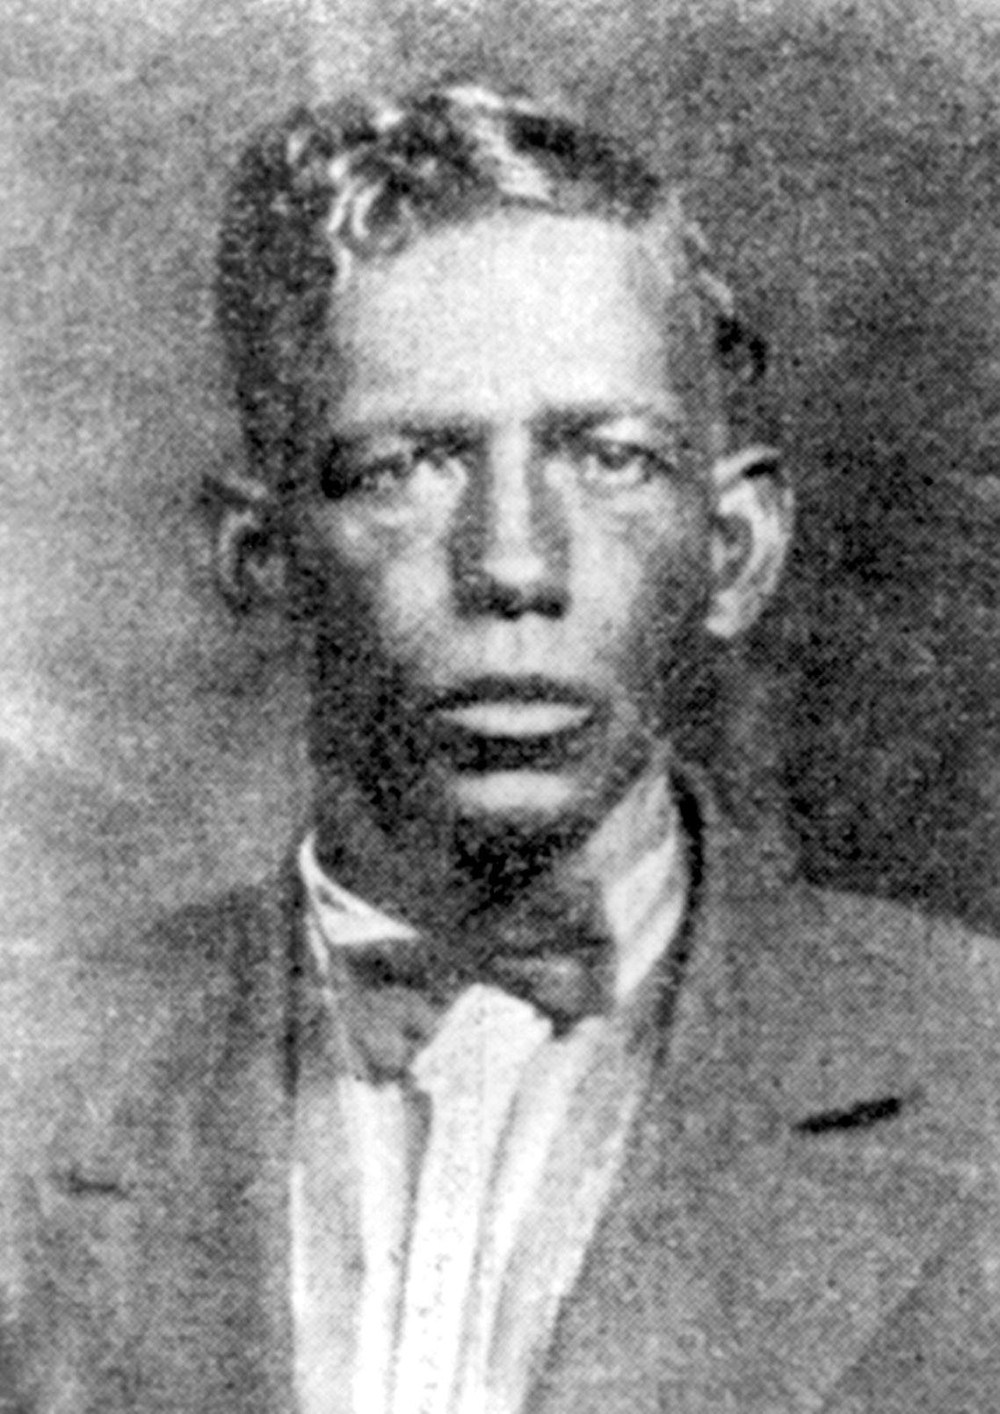 Charley Patton On Spotify